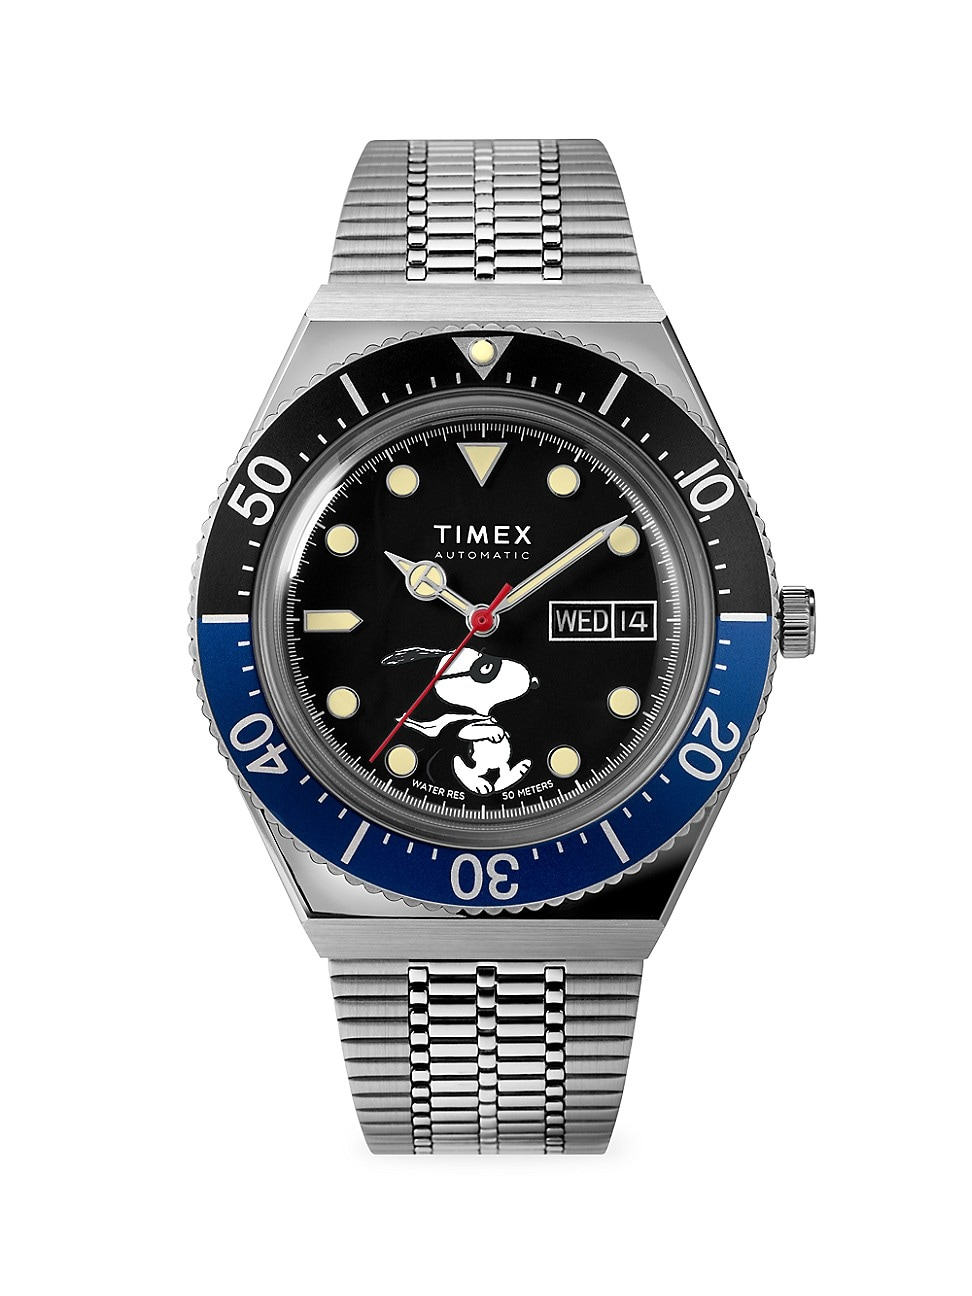 TIMEX LAB COLLAB M79 AUTOMATIC SNOOPY MASKED MARVEL 40MM WATCH